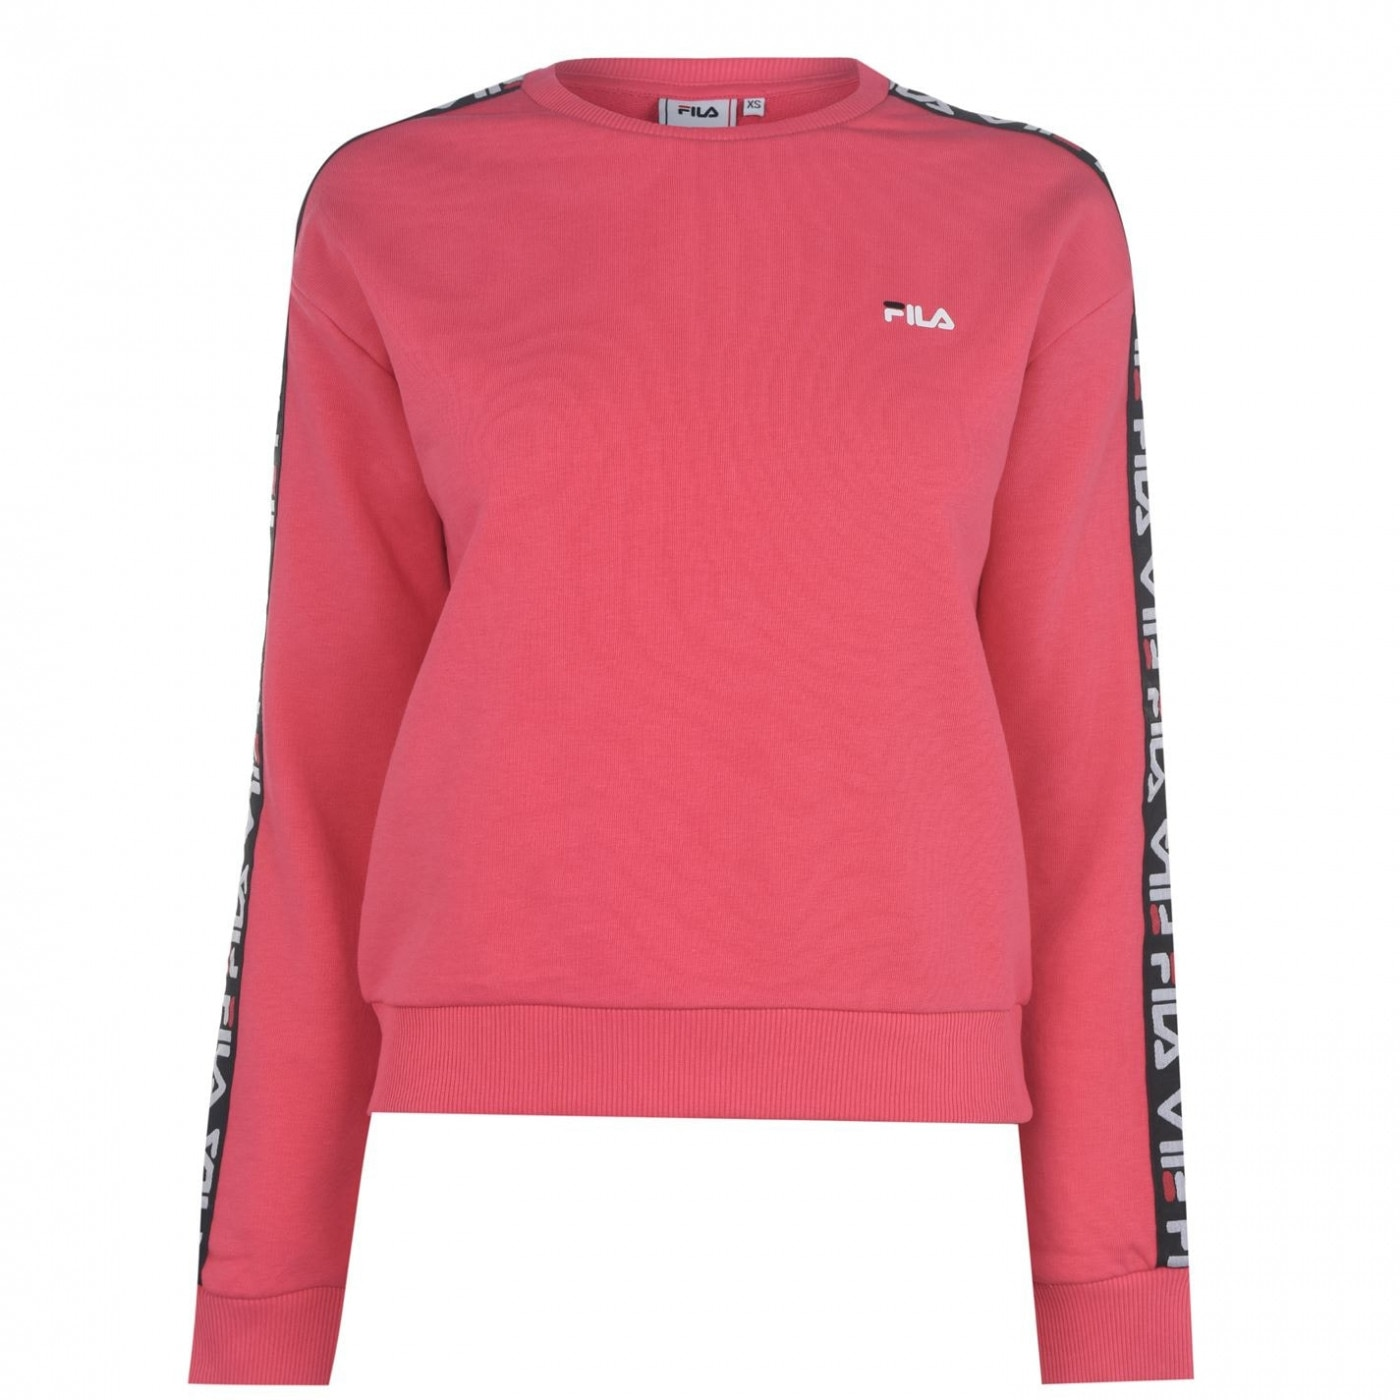 Fila Tivka Sweatshirt Ladies